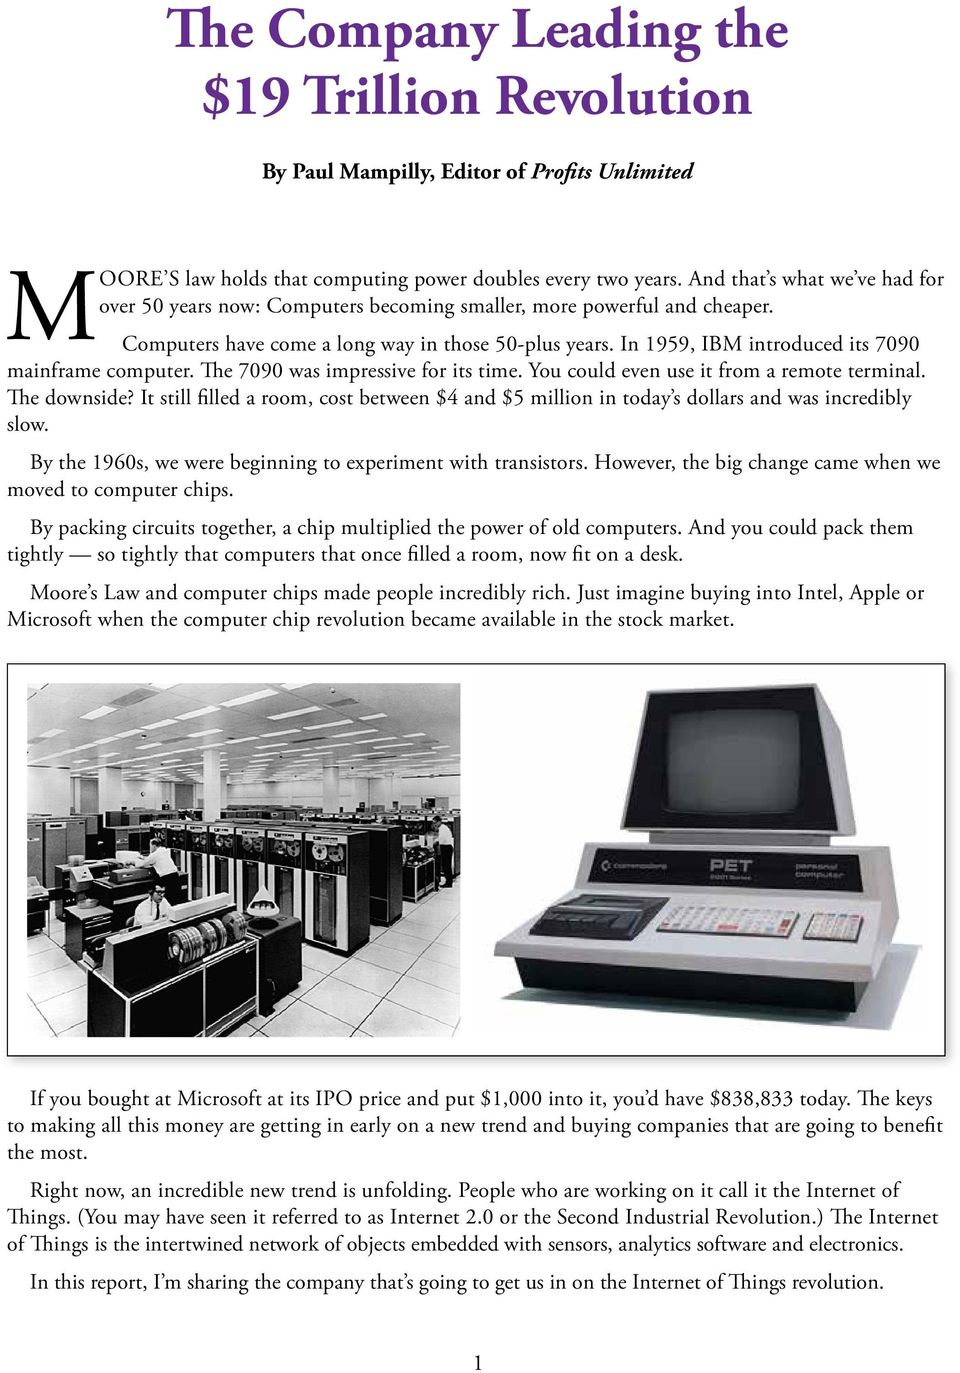 In 1959, IBM introduced its 7090 mainframe computer. The 7090 was impressive for its time. You could even use it from a remote terminal. The downside?